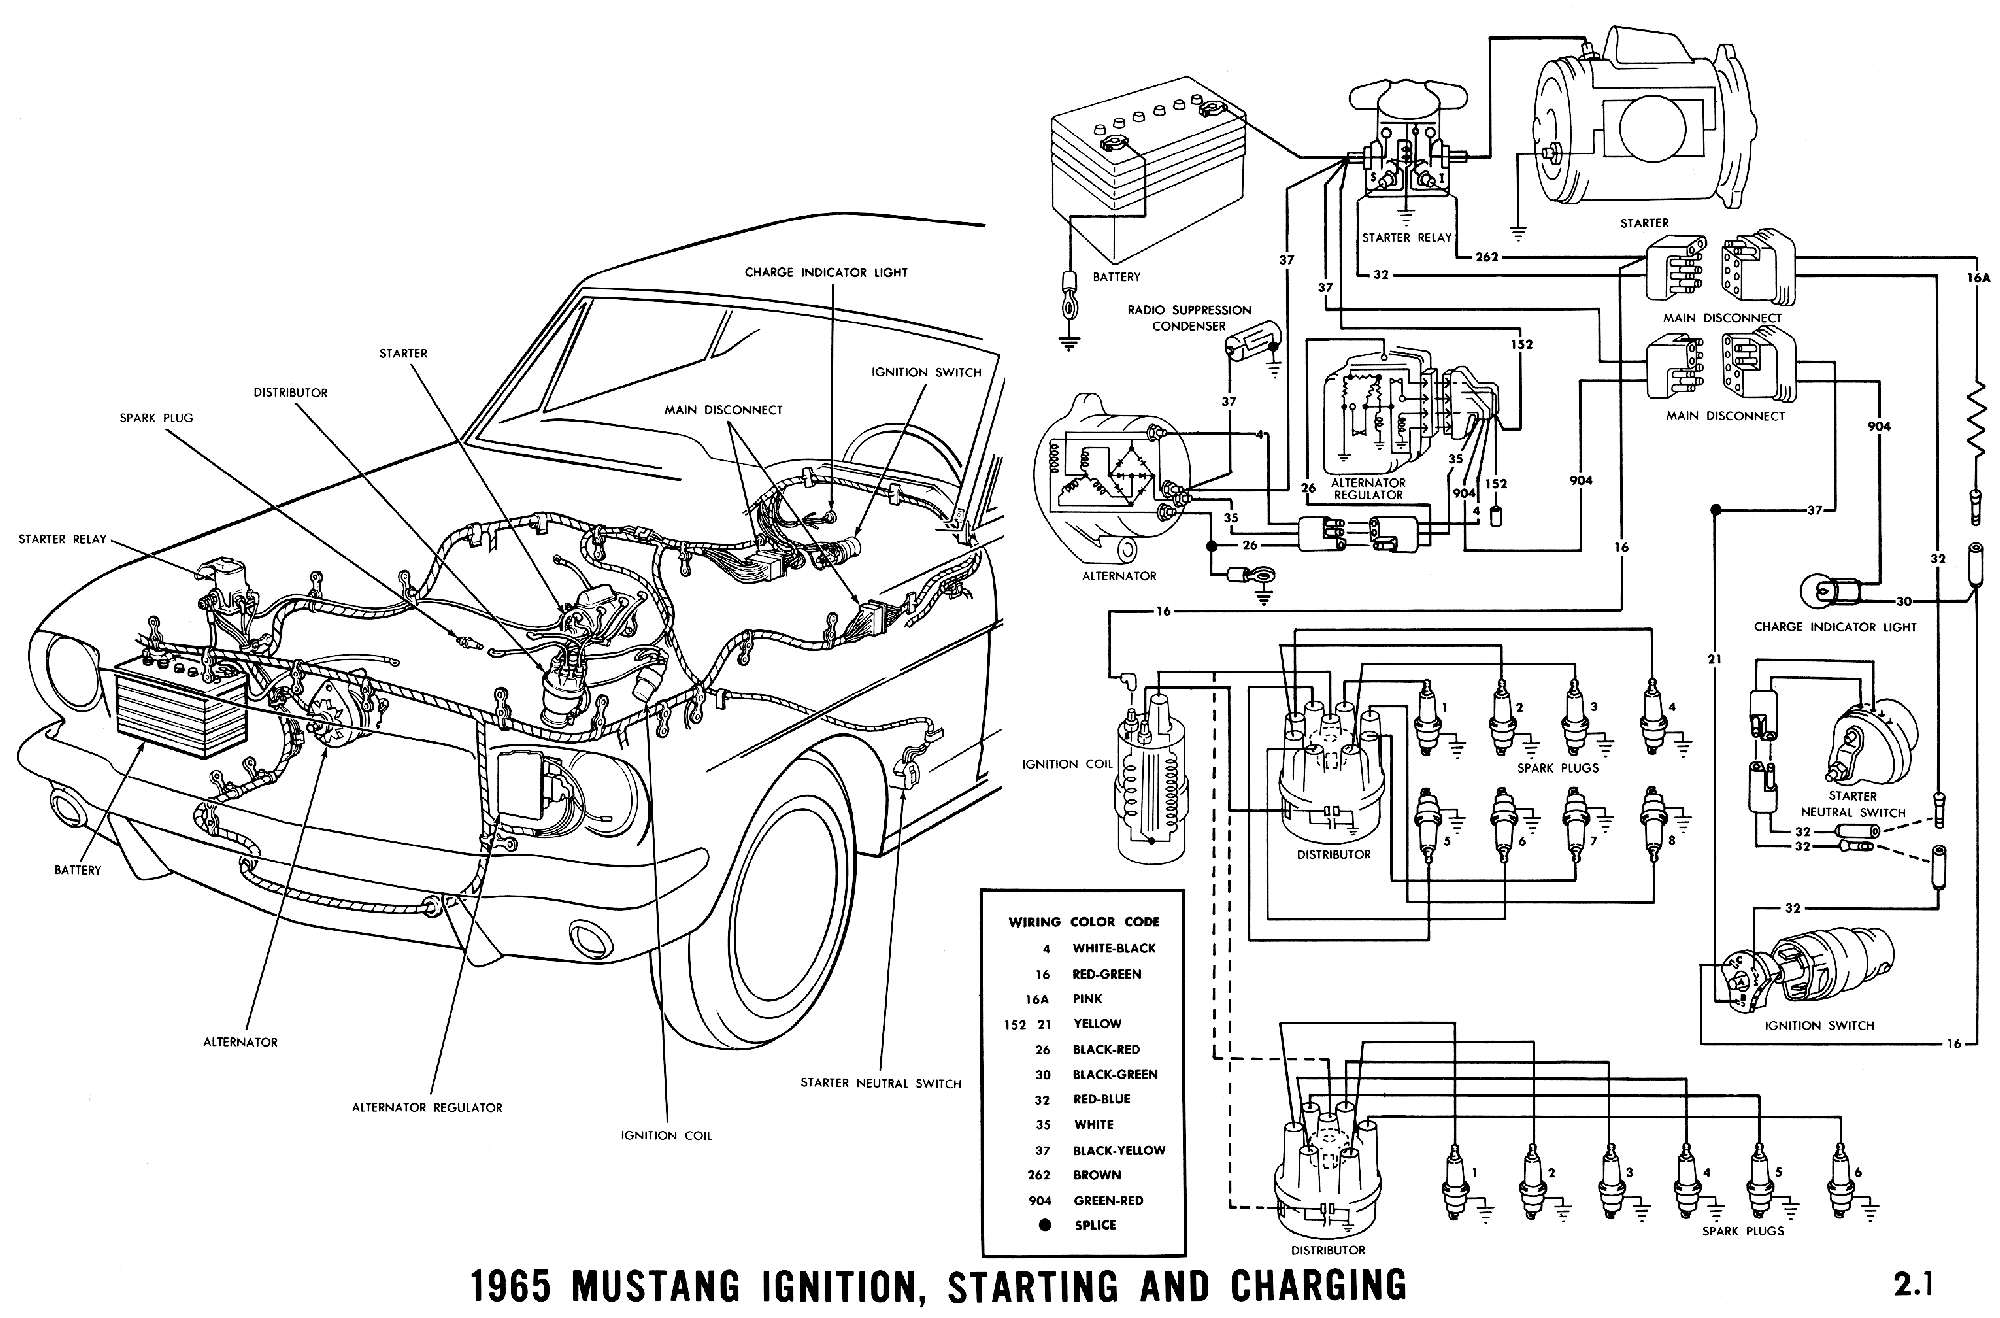 1964 ford ignition switch diagram  ford  wiring diagram images